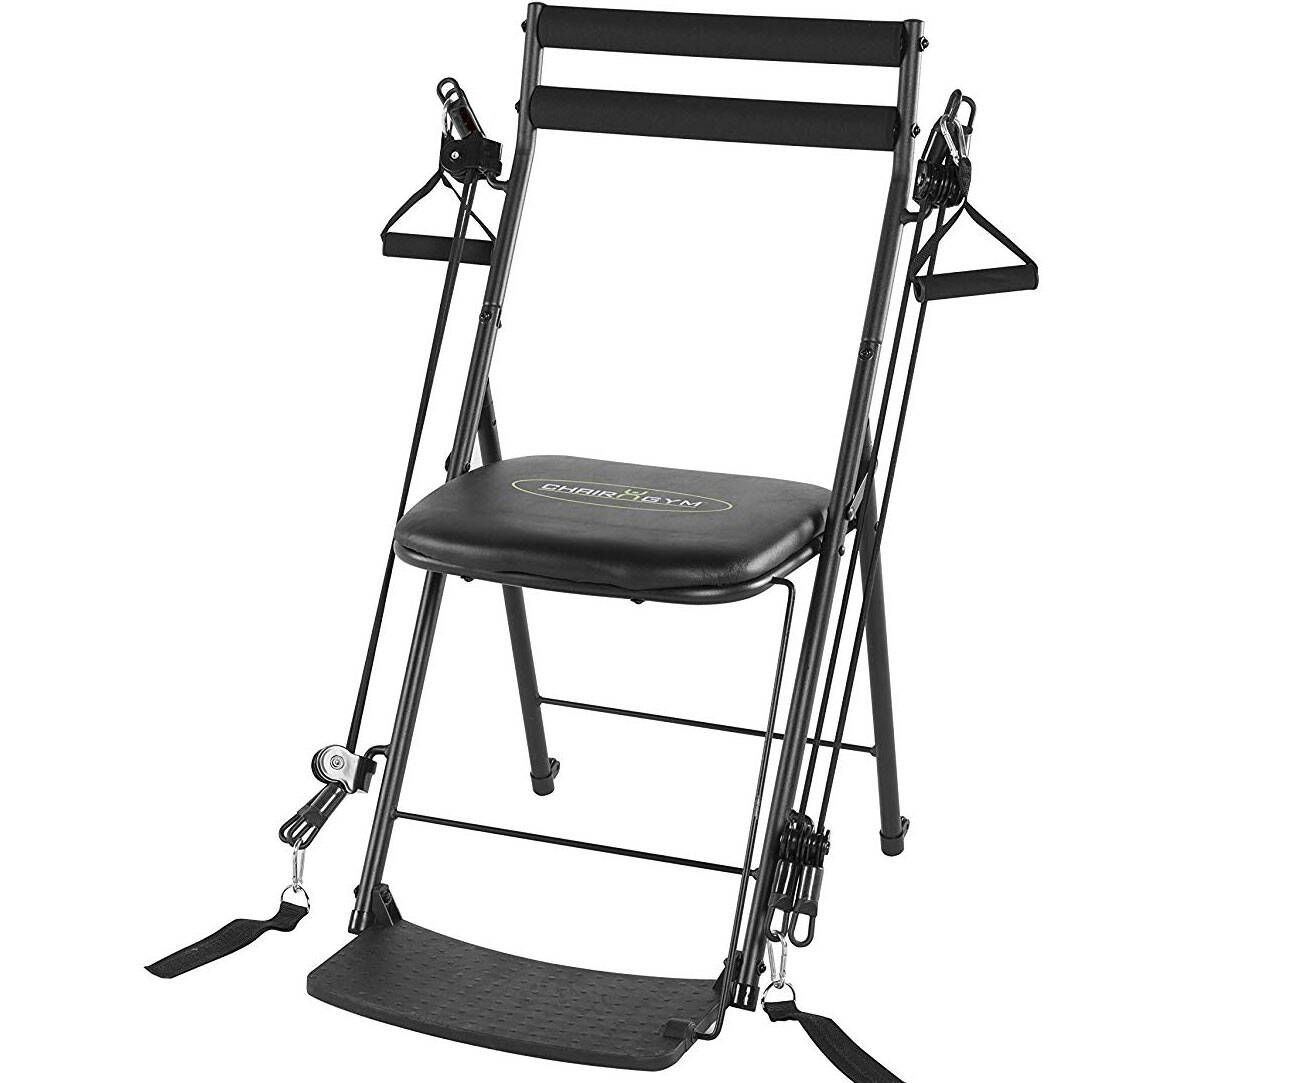 The Total Body Workout Chair Gym